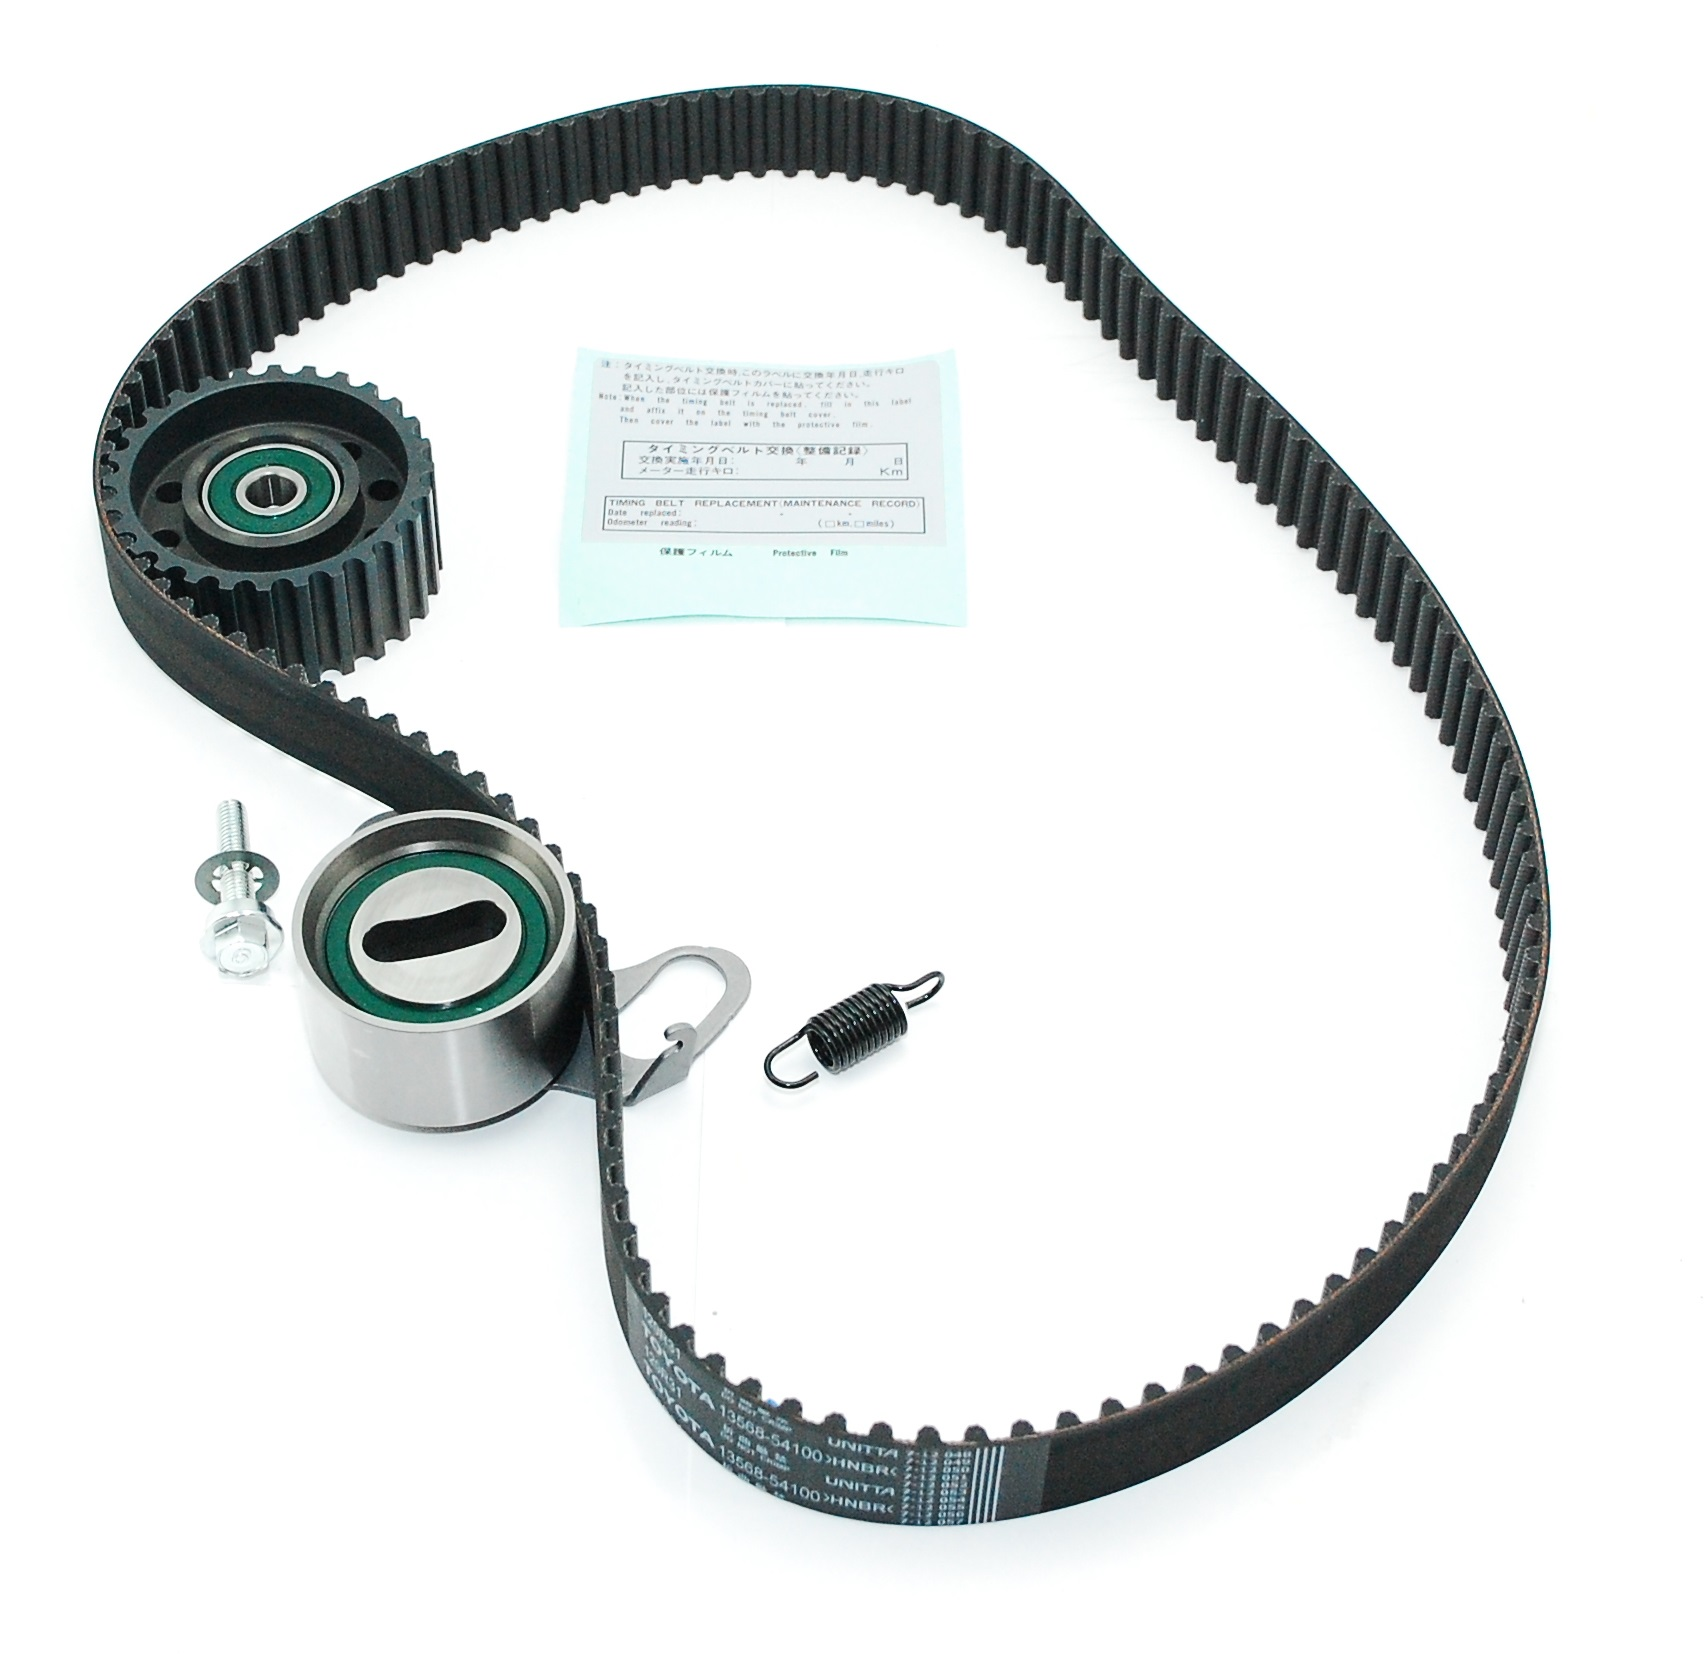 Cam timing belt kit with genuine toyota belt zoom in on this image